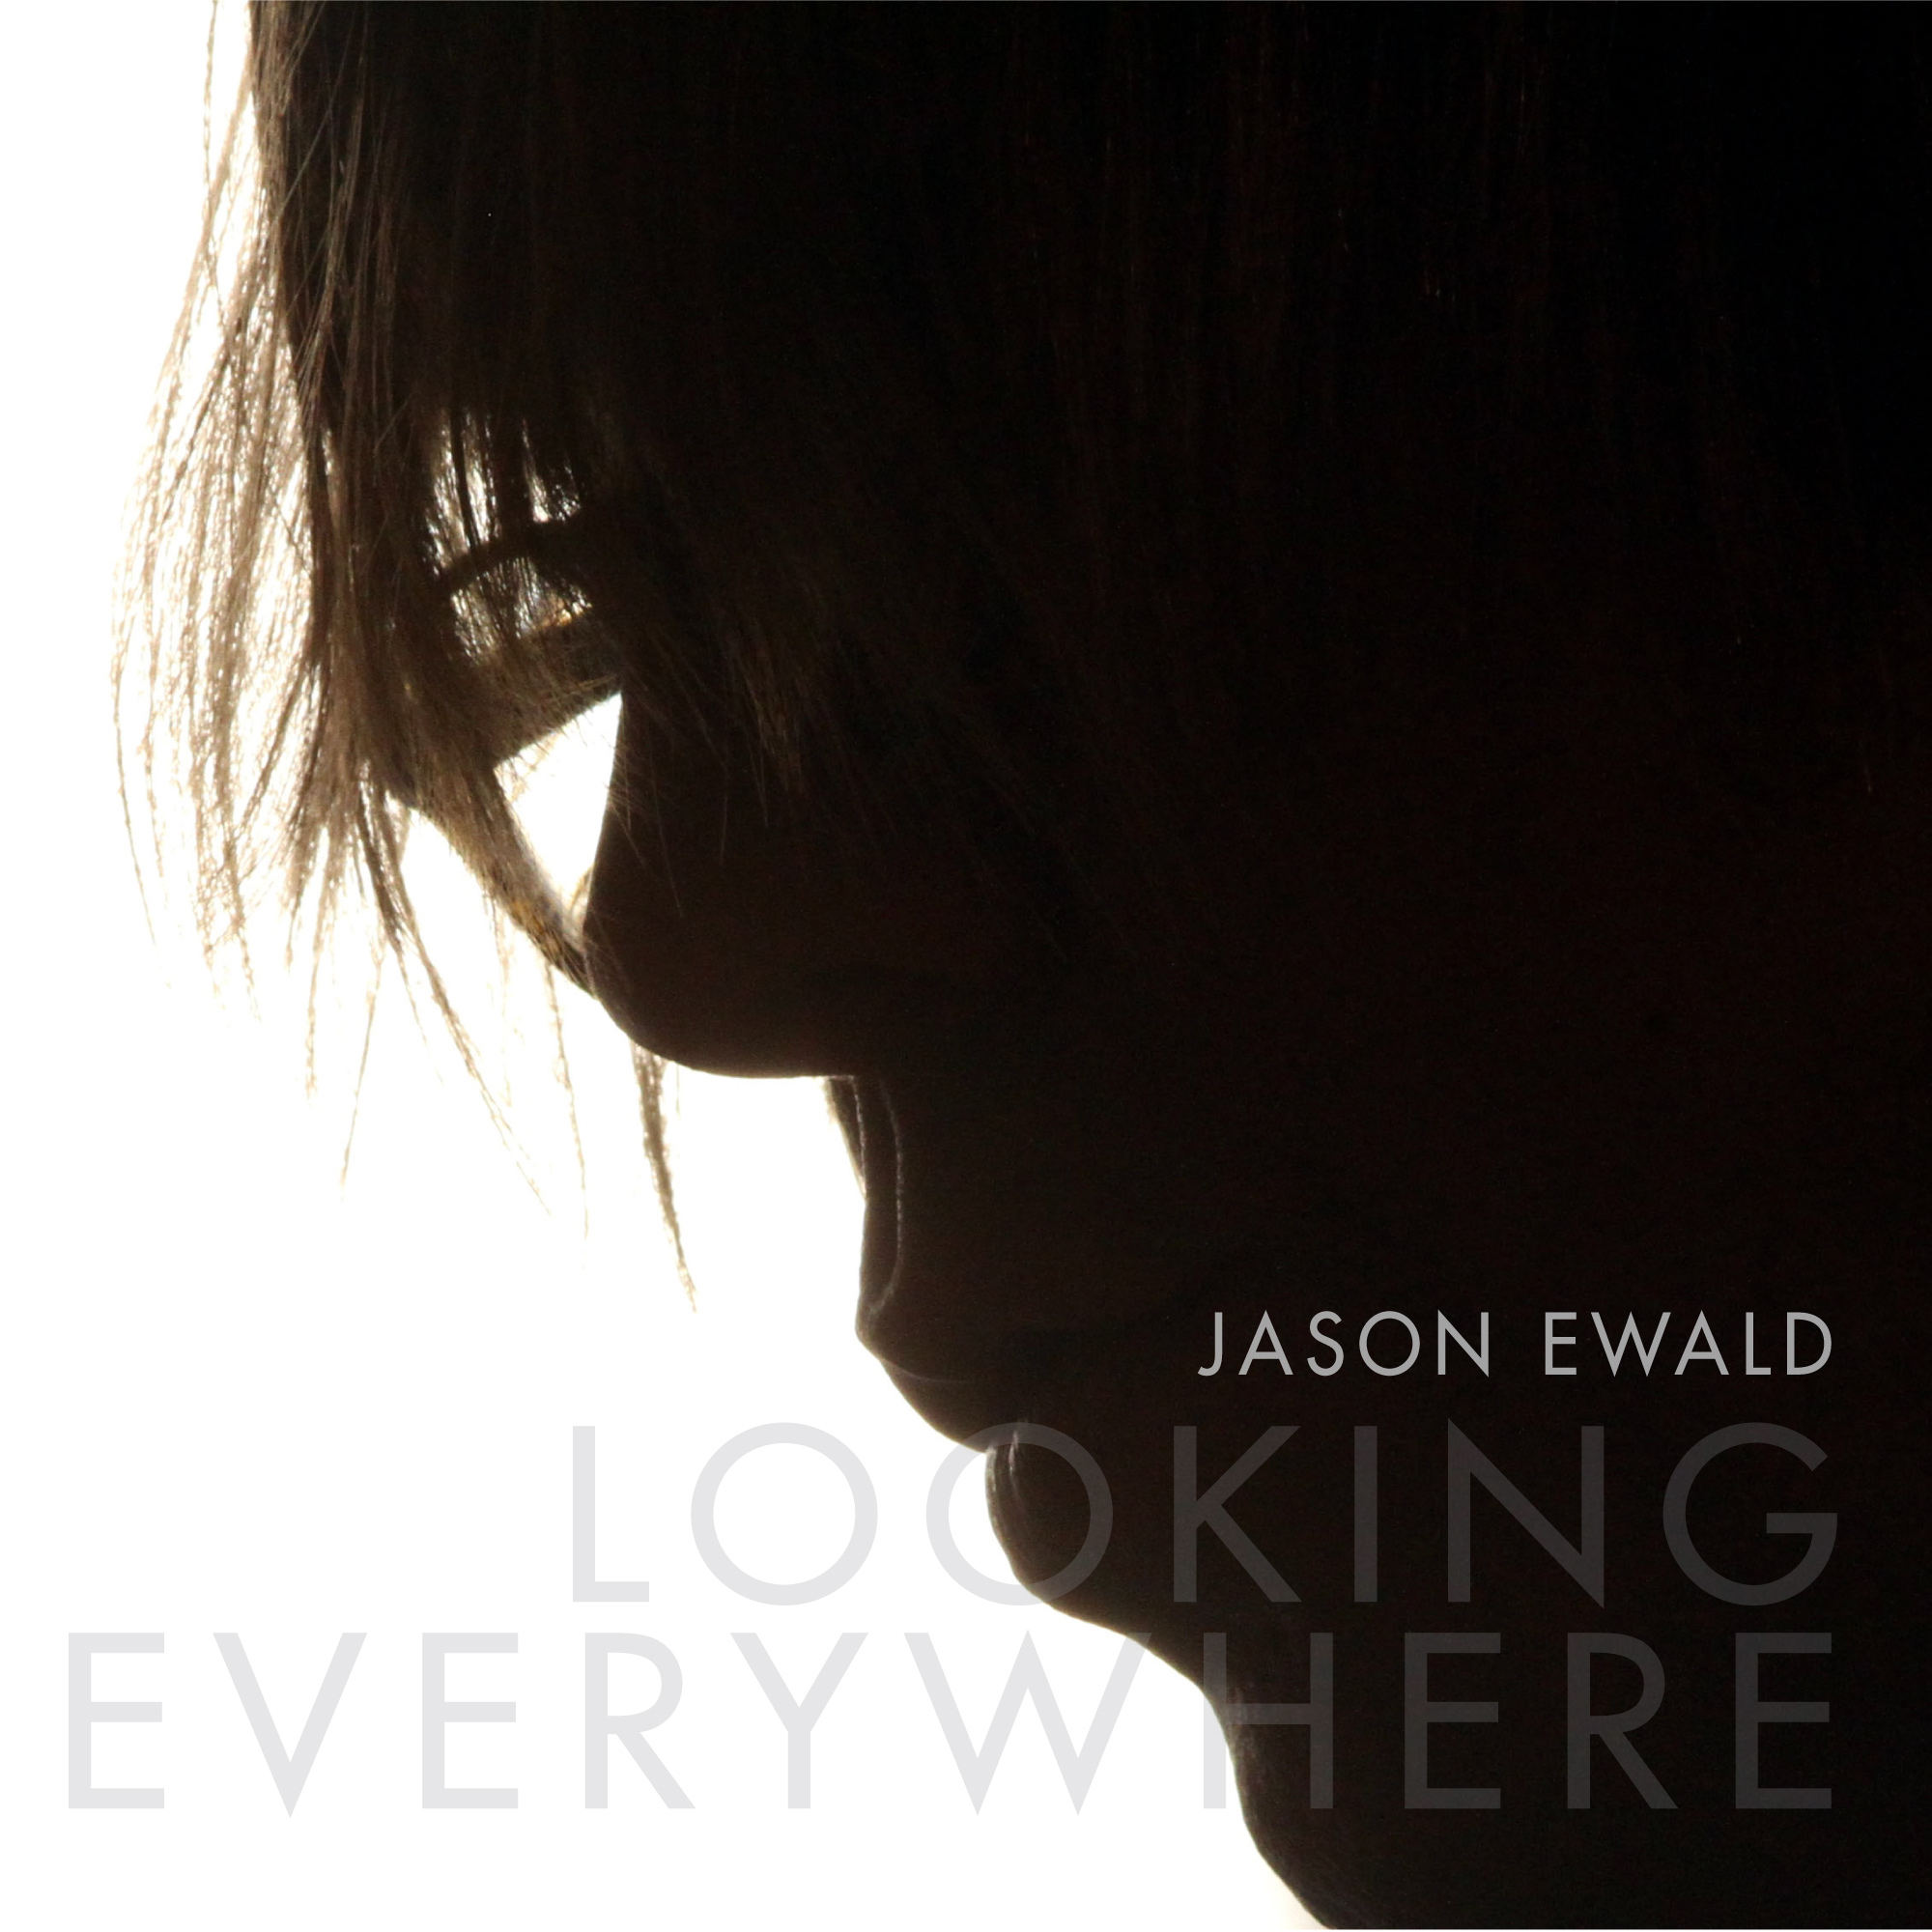 Jason-Ewald-looking-everywhere-single-cover-2000px.jpg